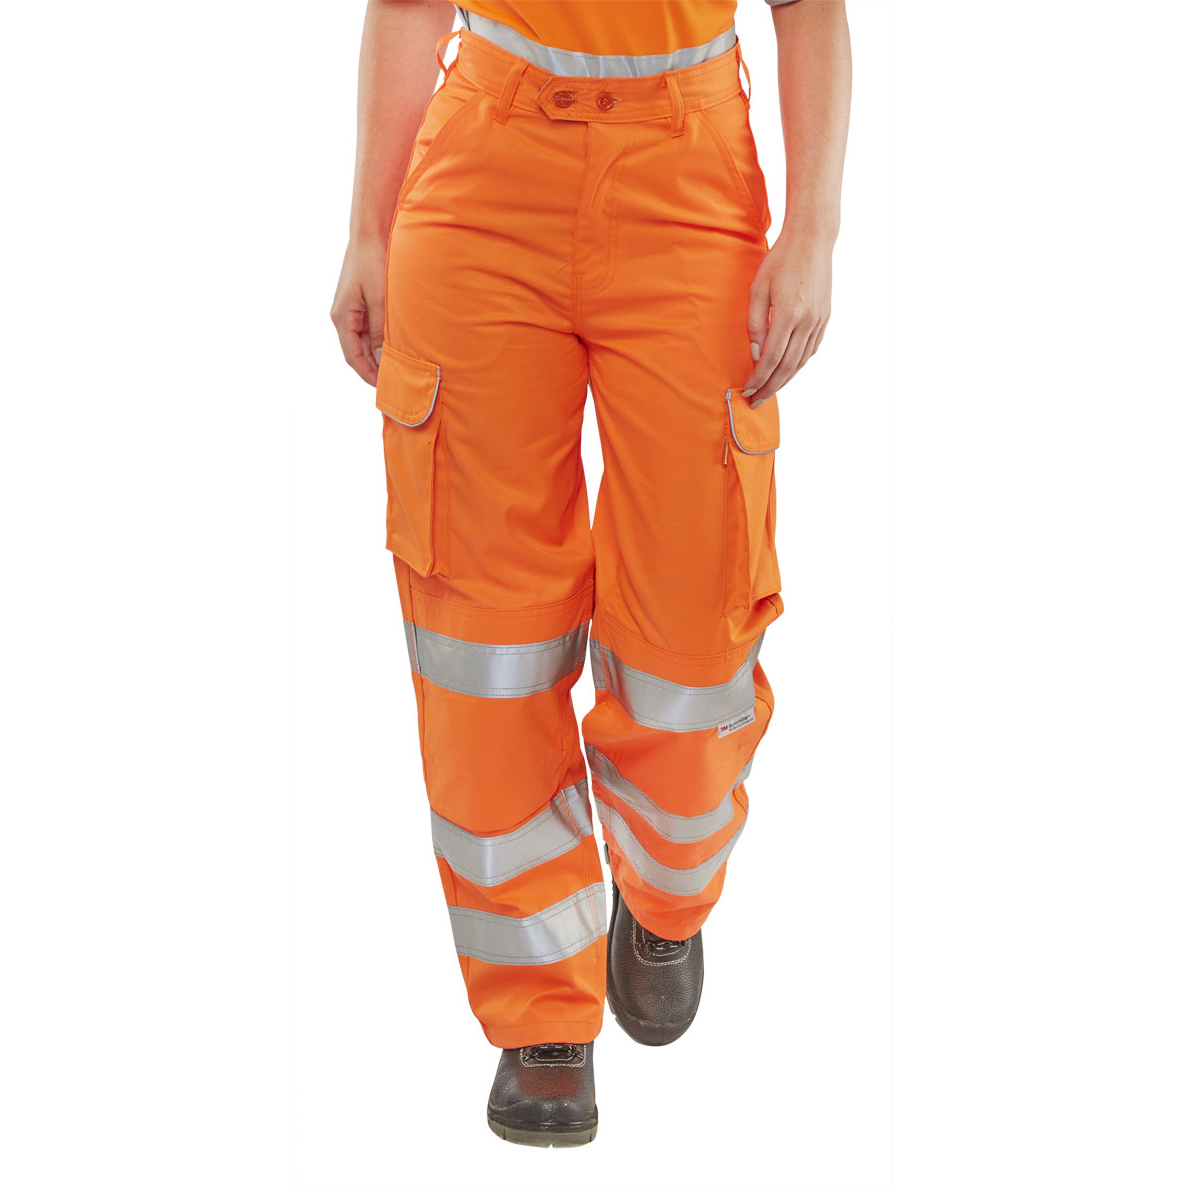 BSeen Rail Spec Trousers Ladies Teflon Hi-Vis Reflective Orange 30 Ref LRST30 *Up to 3 Day Leadtime*